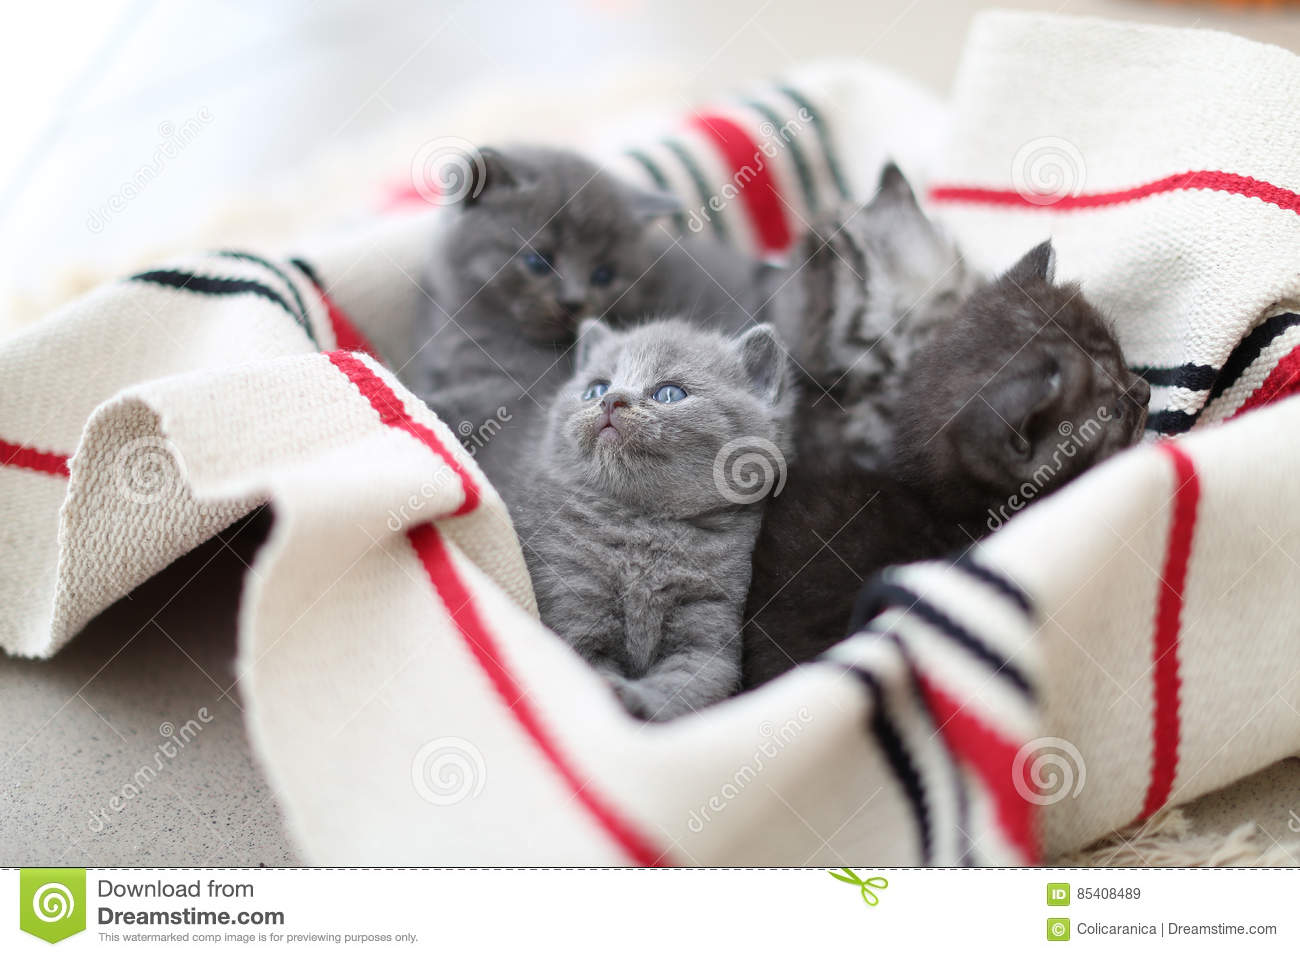 Cute face, newly born kittens looking up